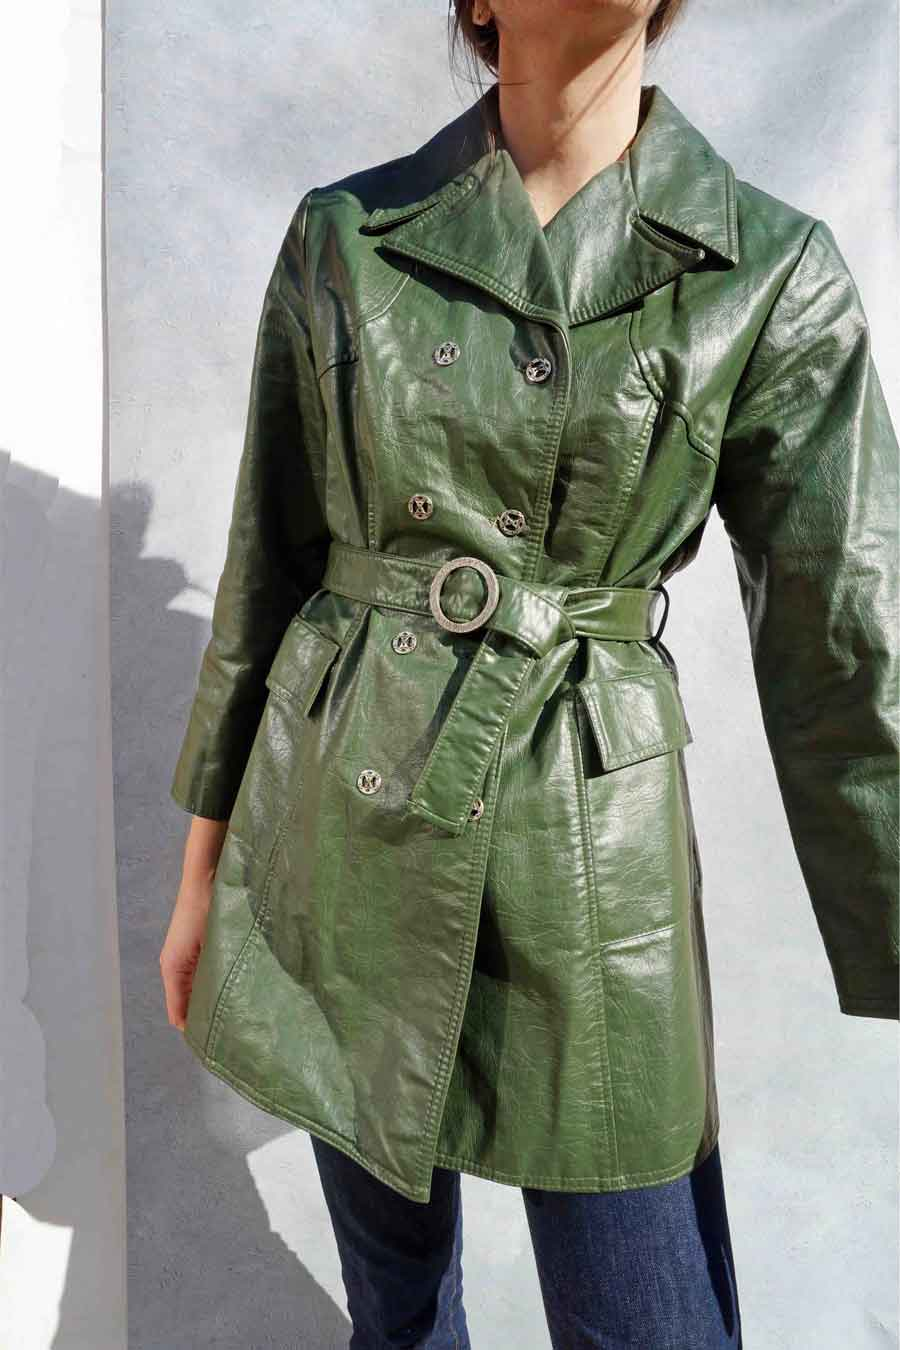 Vintage 60s Green Faux Leather Jacket - Vinyl Trench Coat - Ada's Attic Vintage